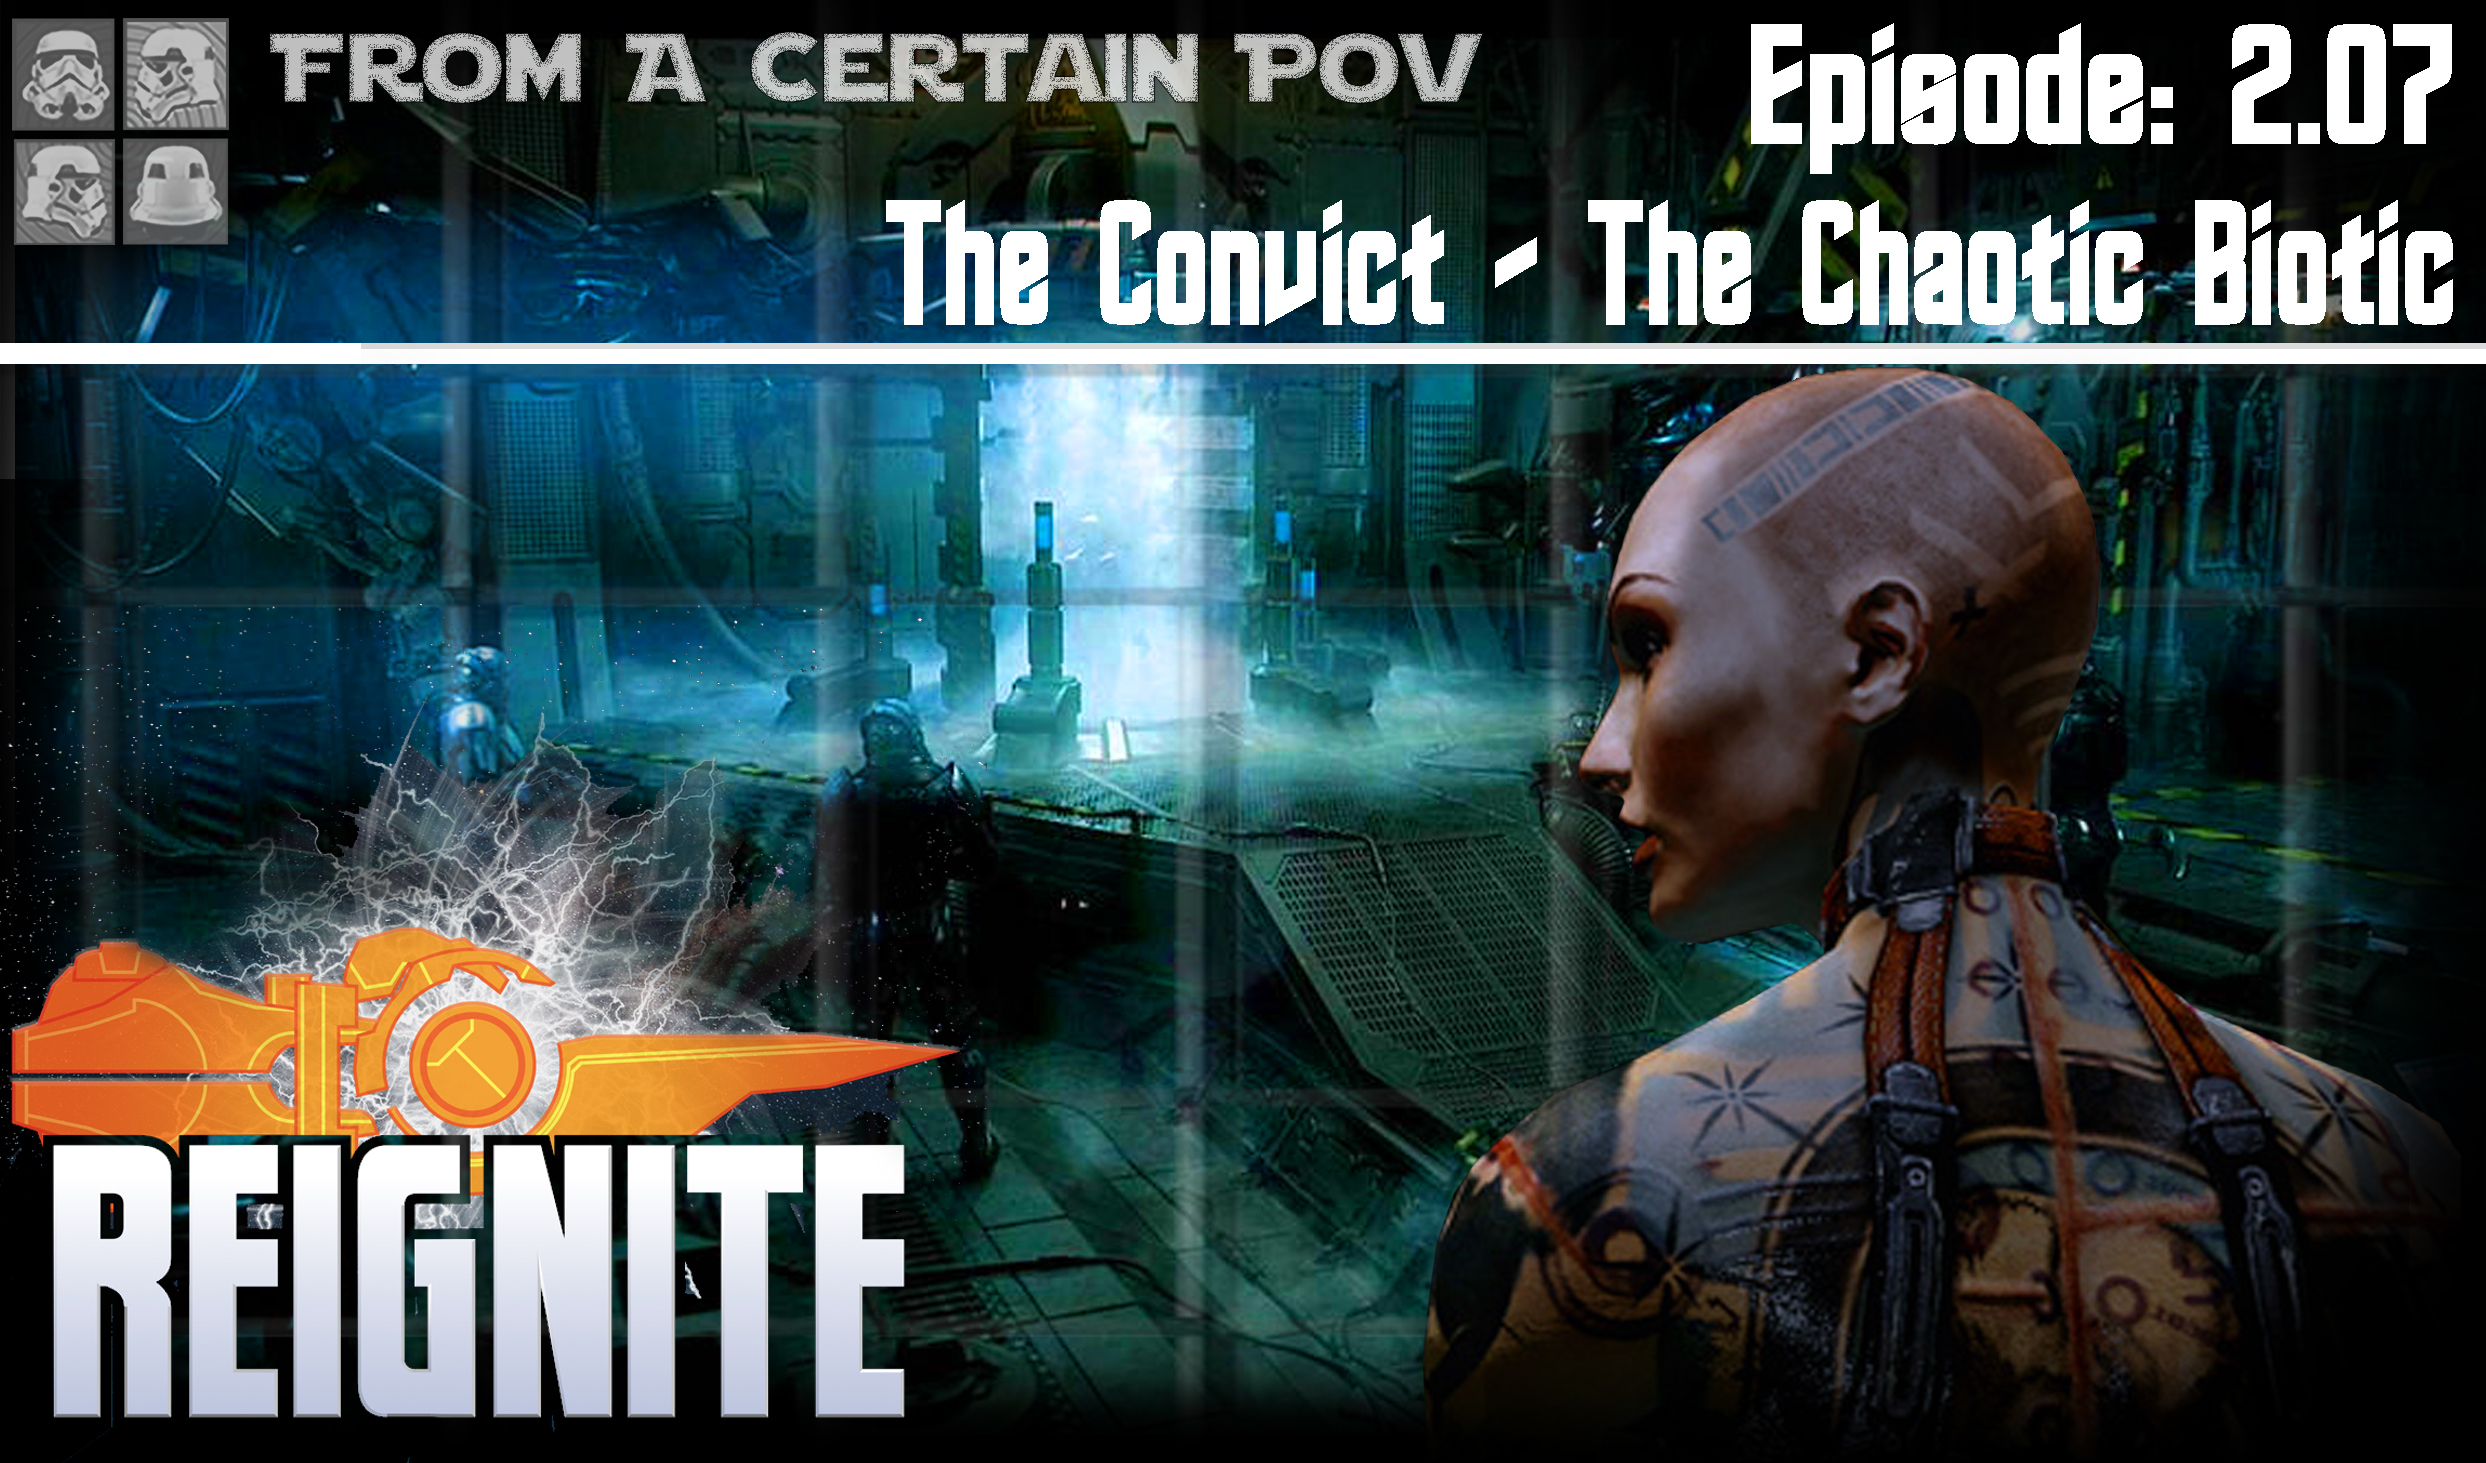 2.07 - The Convict - The Chaotic Biotic.jpg